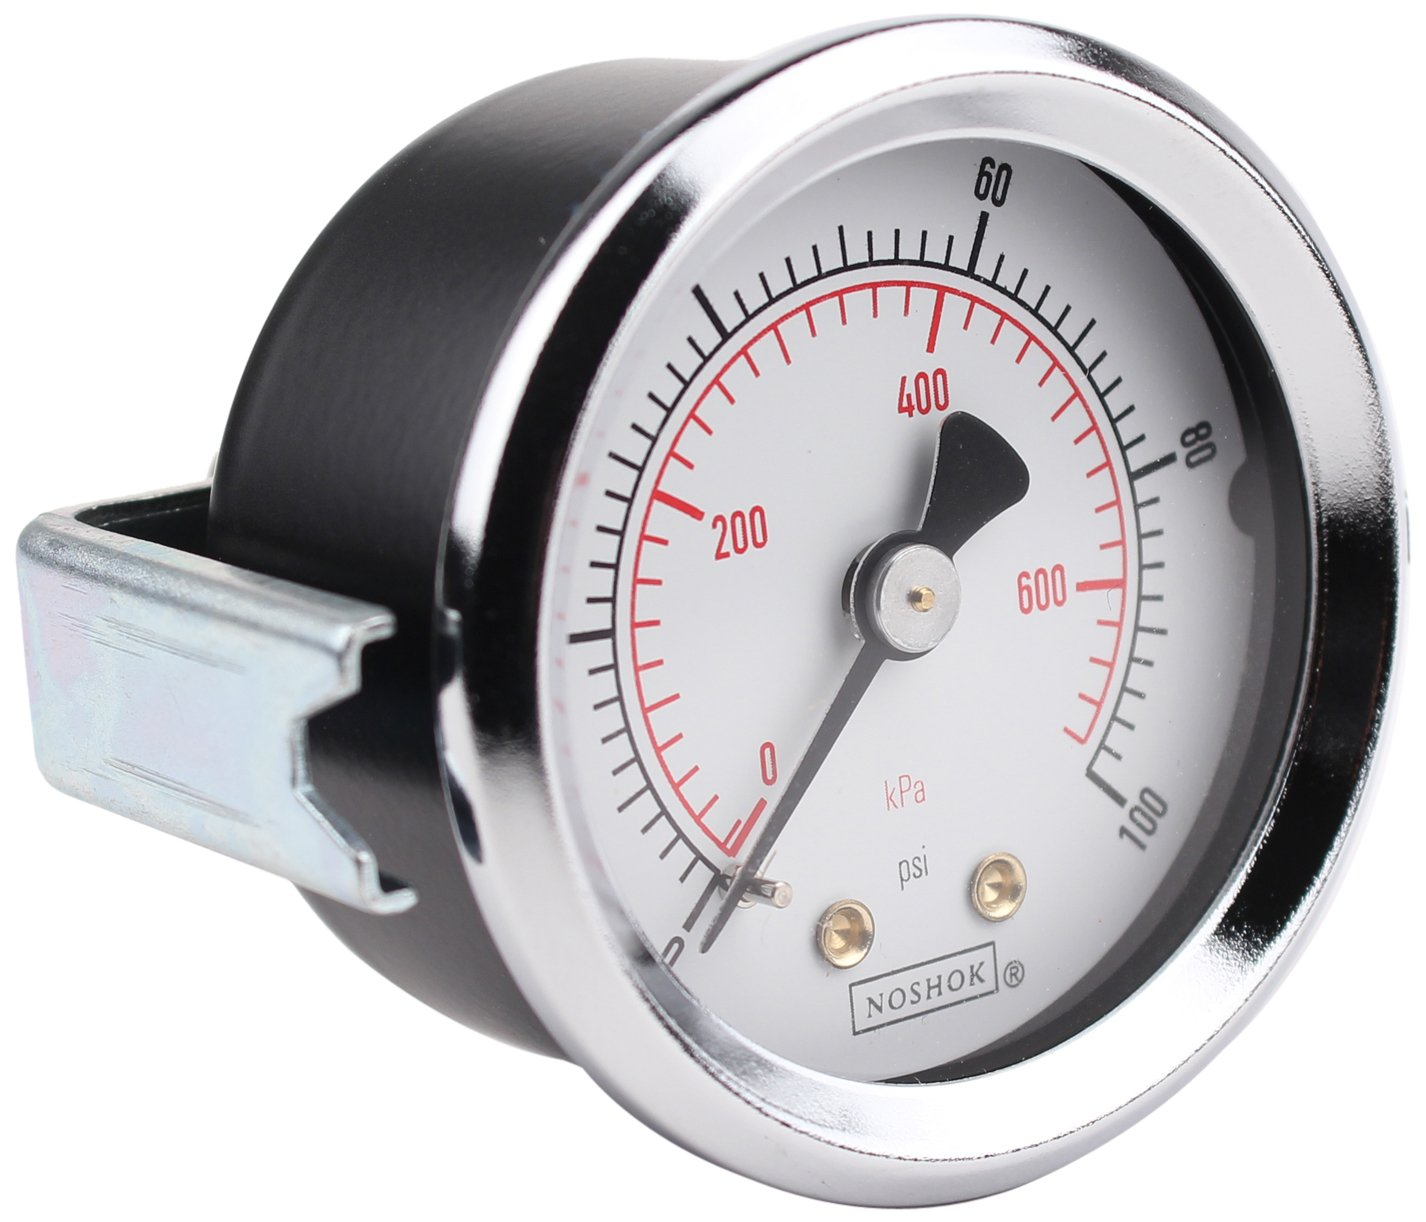 NOSHOK 100 Series ABS Dual Scale Dial Indicating Pressure Gauge with Back Mount 25-110-60-psi//kPa +//-2.5/% Accuracy 2-1//2 Dial 0-60 psi Pressure Range 2-1//2 Dial Inc